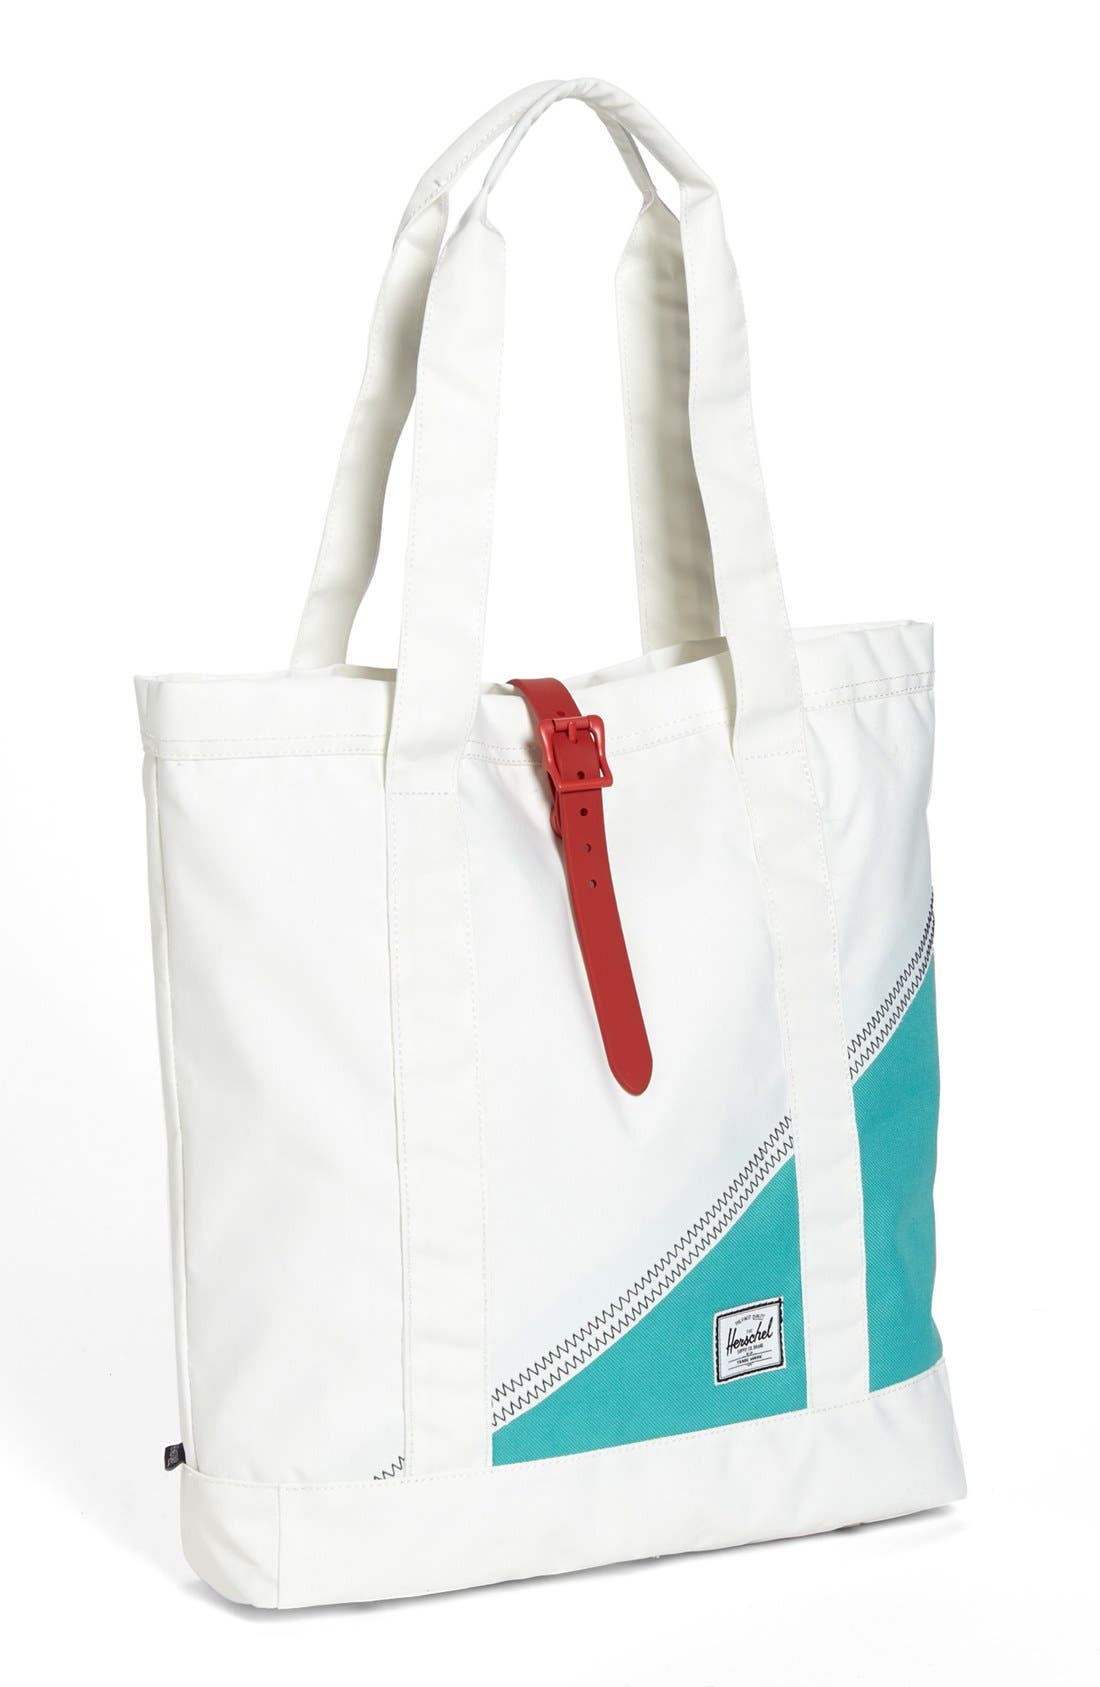 Main Image - Herschel Supply Co. 'Market - Studio Collection' Tote Bag